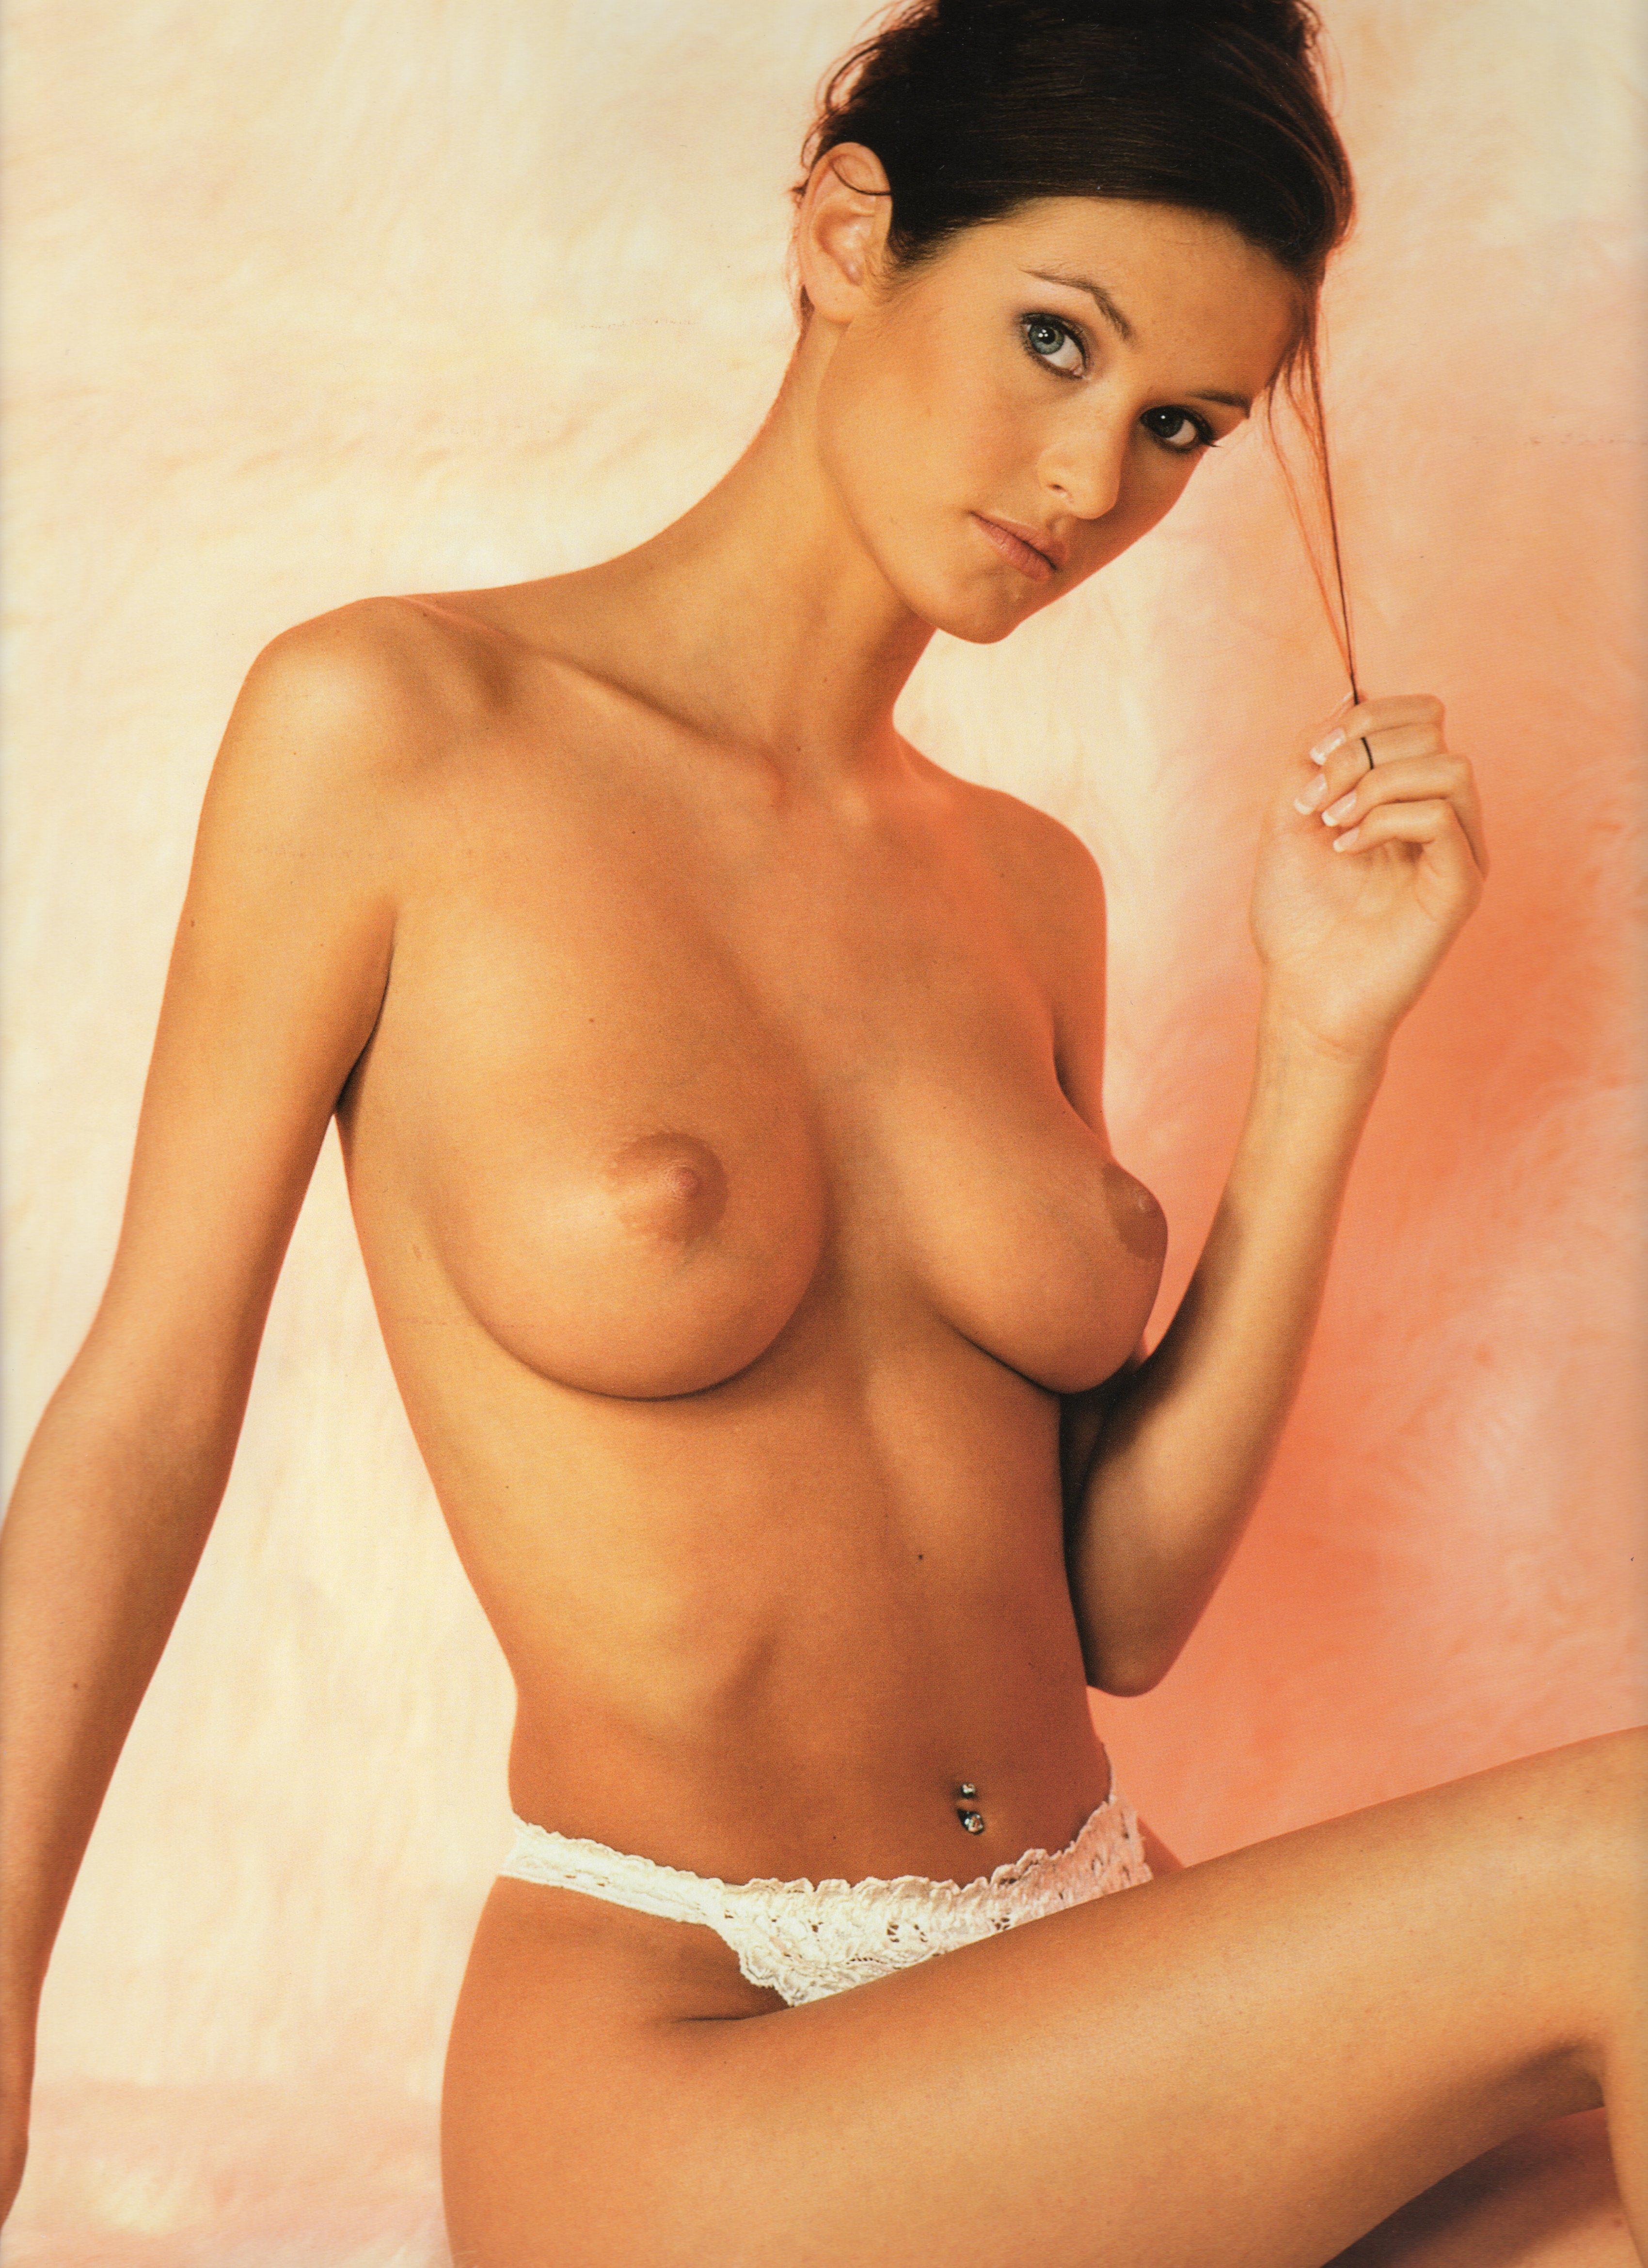 indian naked collage girl photo